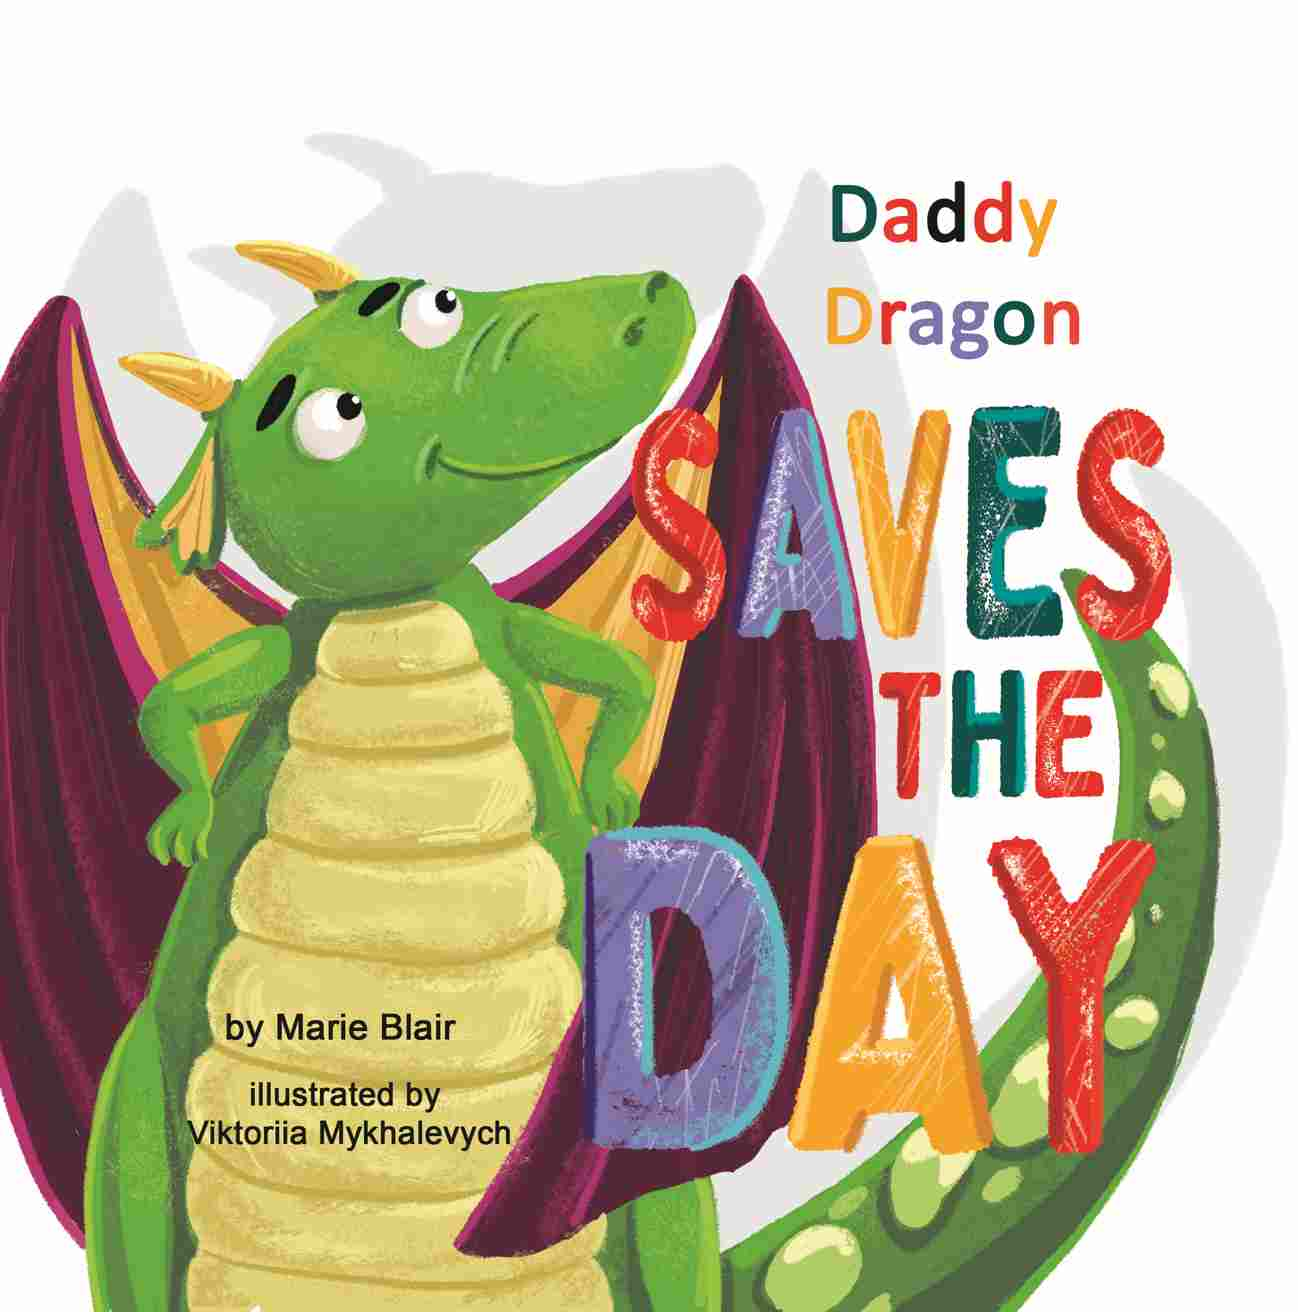 Daddy Dragon Saves the Day